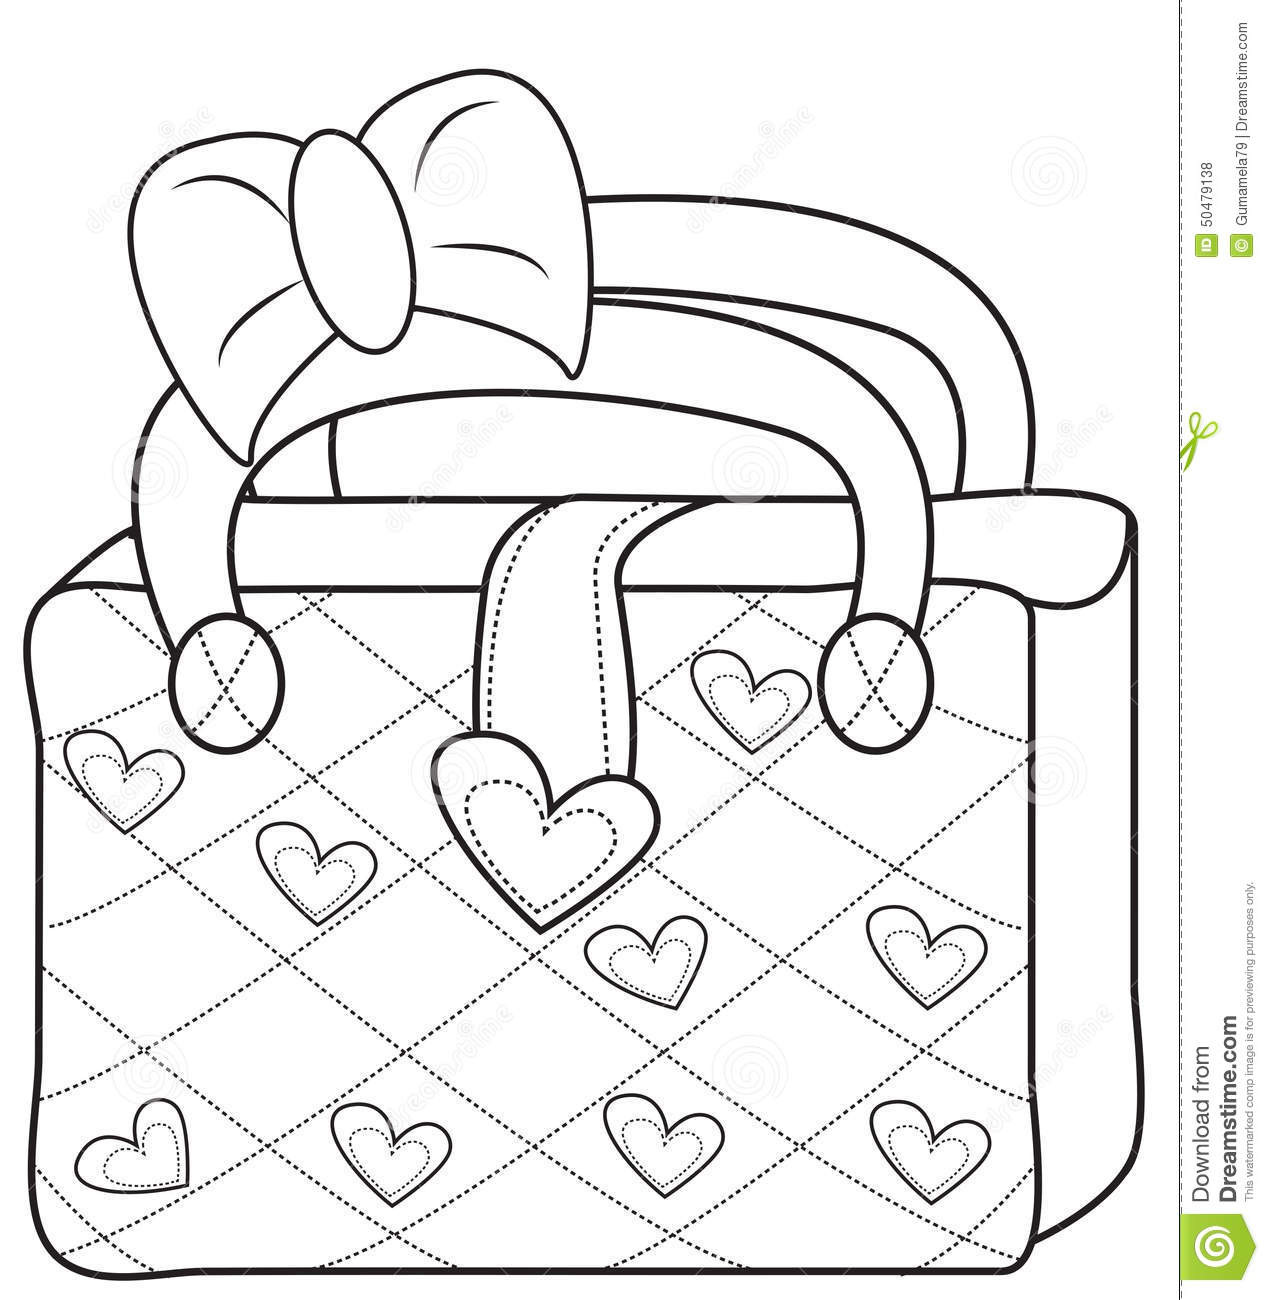 Coloring Book Bag  La s bag coloring page stock illustration Image of